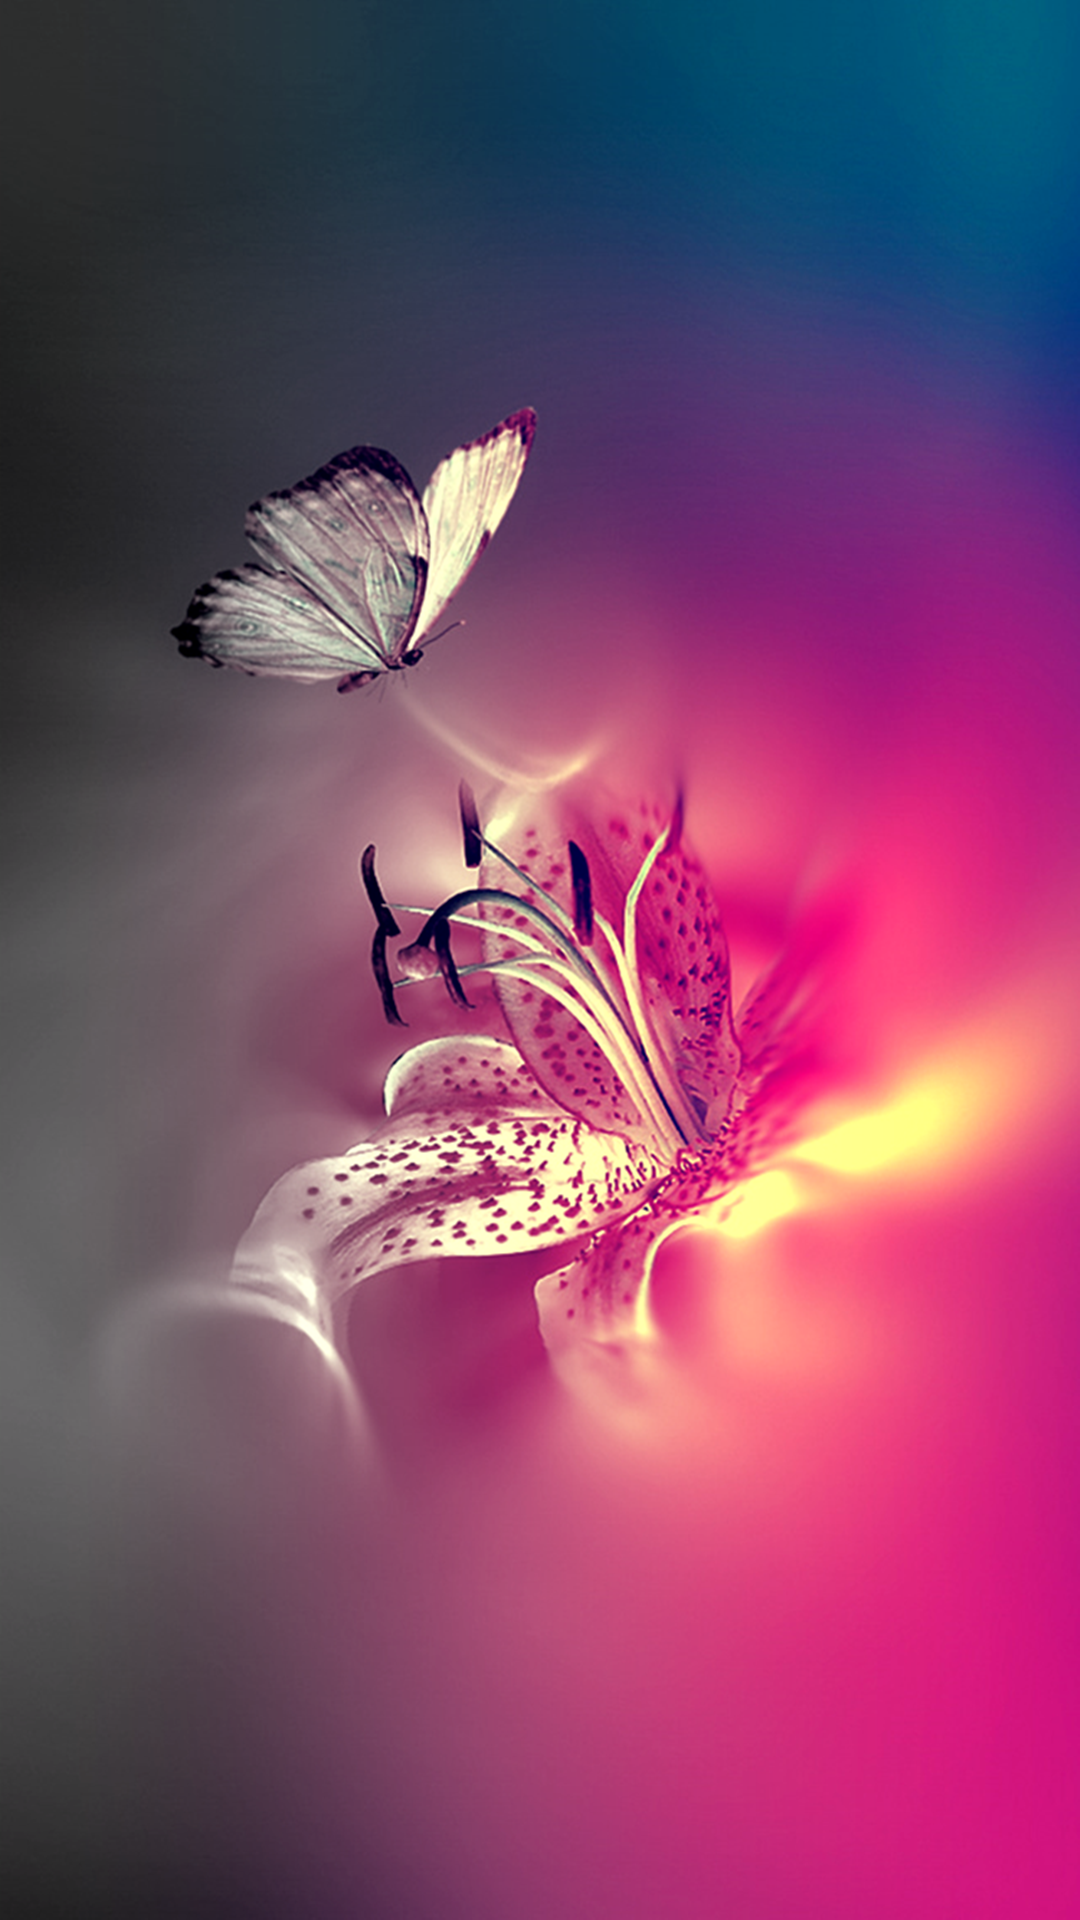 Captivating Light Butterfly Wallpaper Nature Iphone Wallpaper Butterfly Wallpaper Iphone